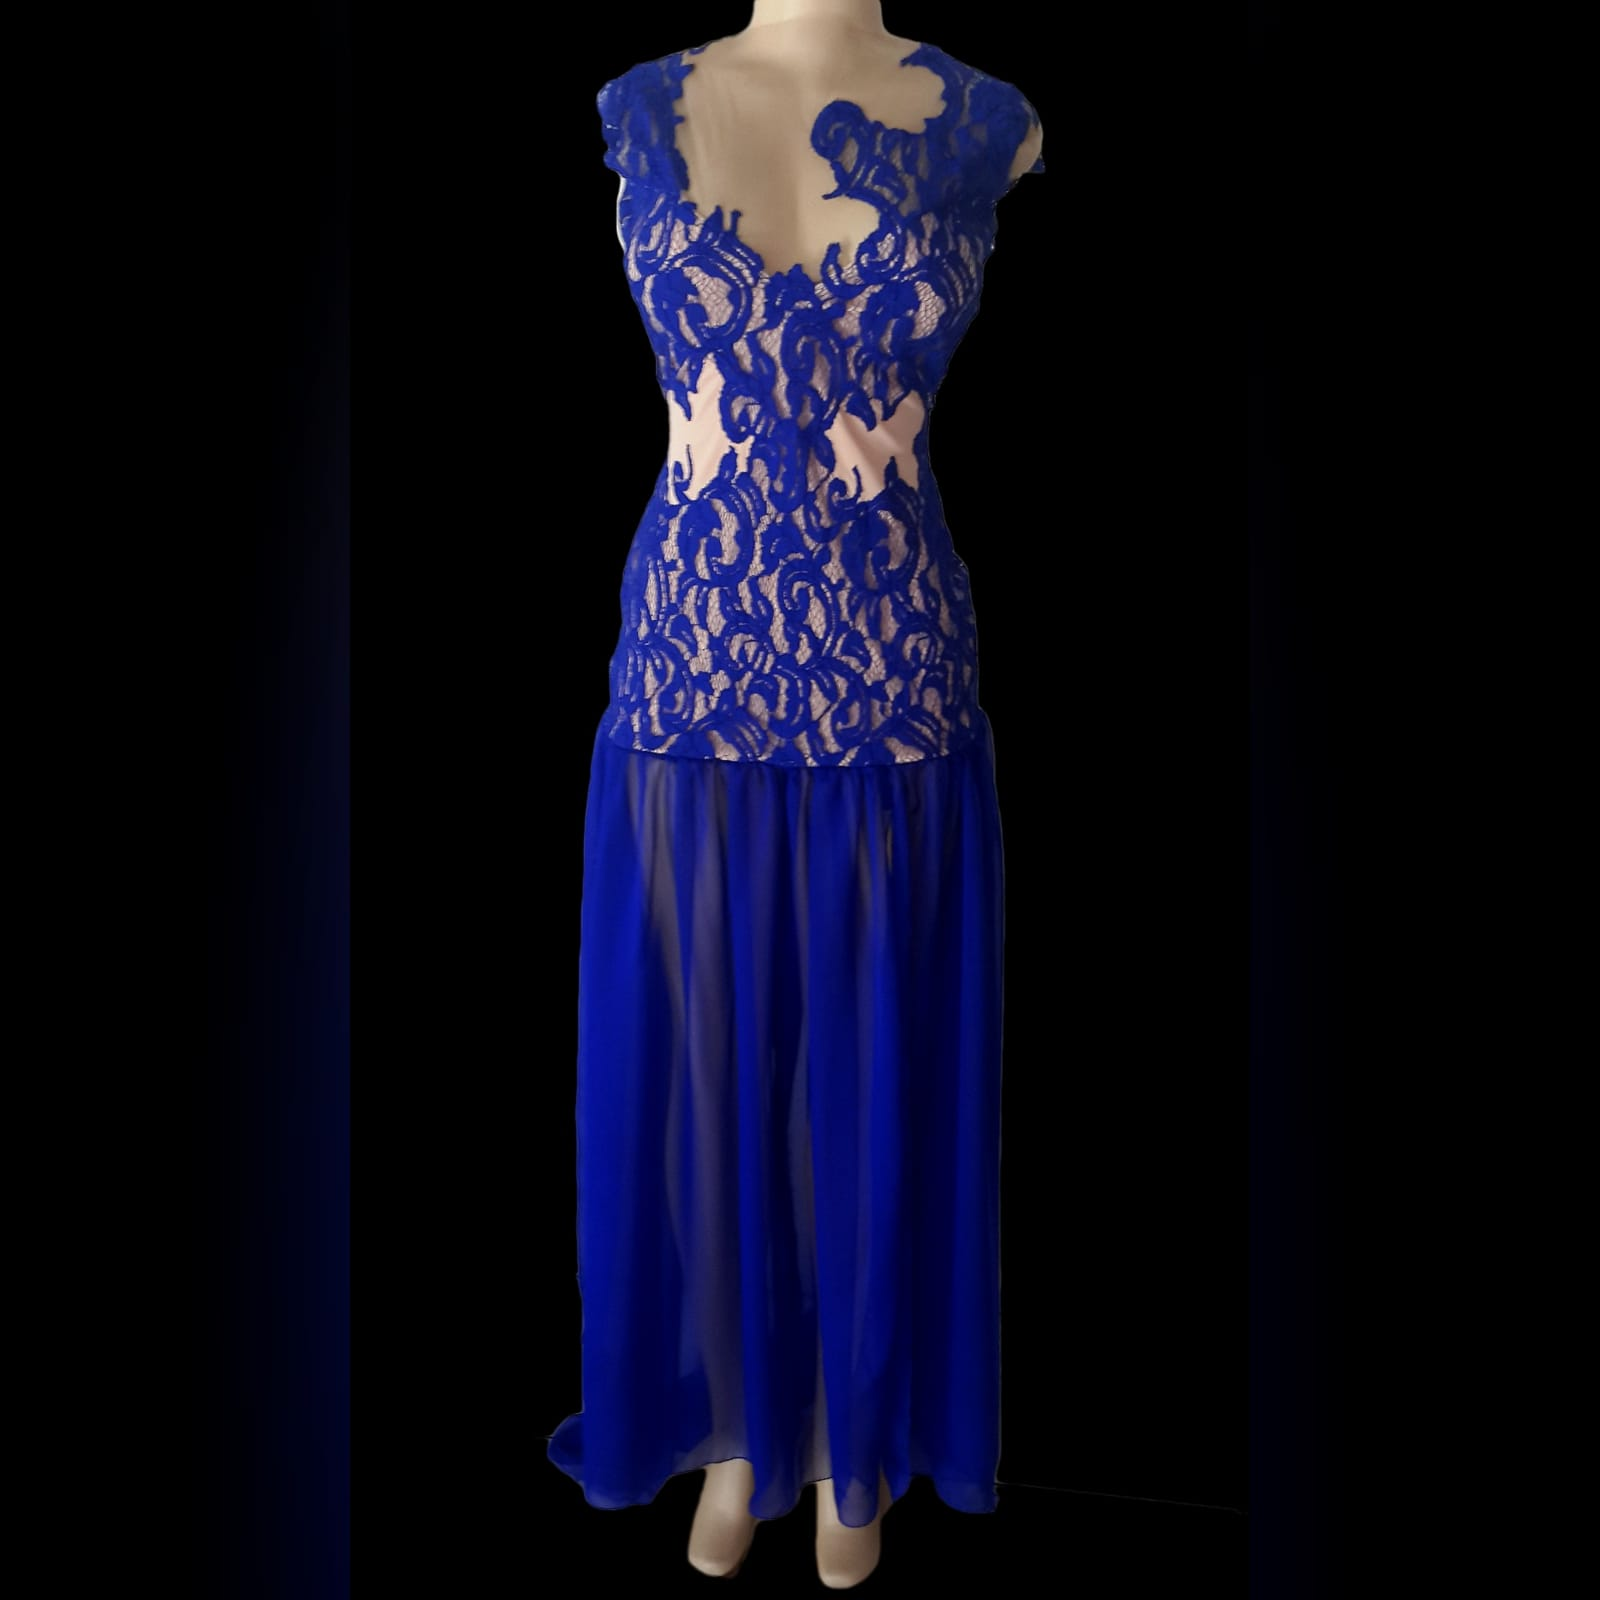 Royal blue pageant evening dress 5 royal blue pageant evening dress, with a lace bodice lined in nude, with a sheer gathered chiffon bottom with high slit, and a rounded open back.